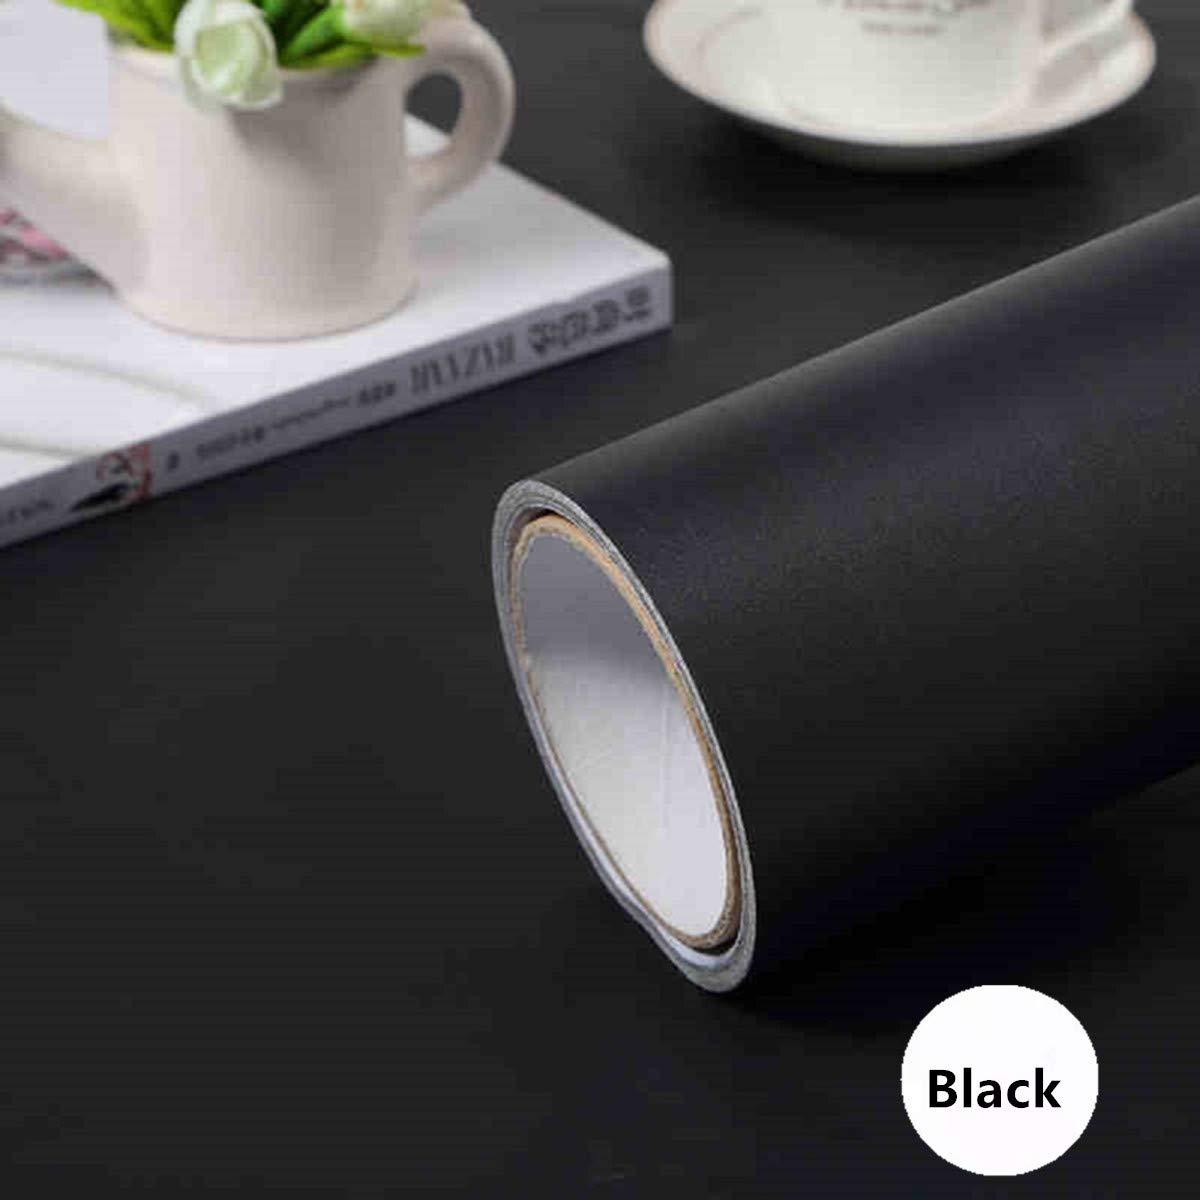 Black Self Adhesive Wallpaper Removable Peel and Stick Self Adhesive Film Stick Paper Easy to Apply Peel and Stick Wallpaper Stick Wallpaper Shelf Liner Table and Door Reform(15.7'' x118'') by practicalWs